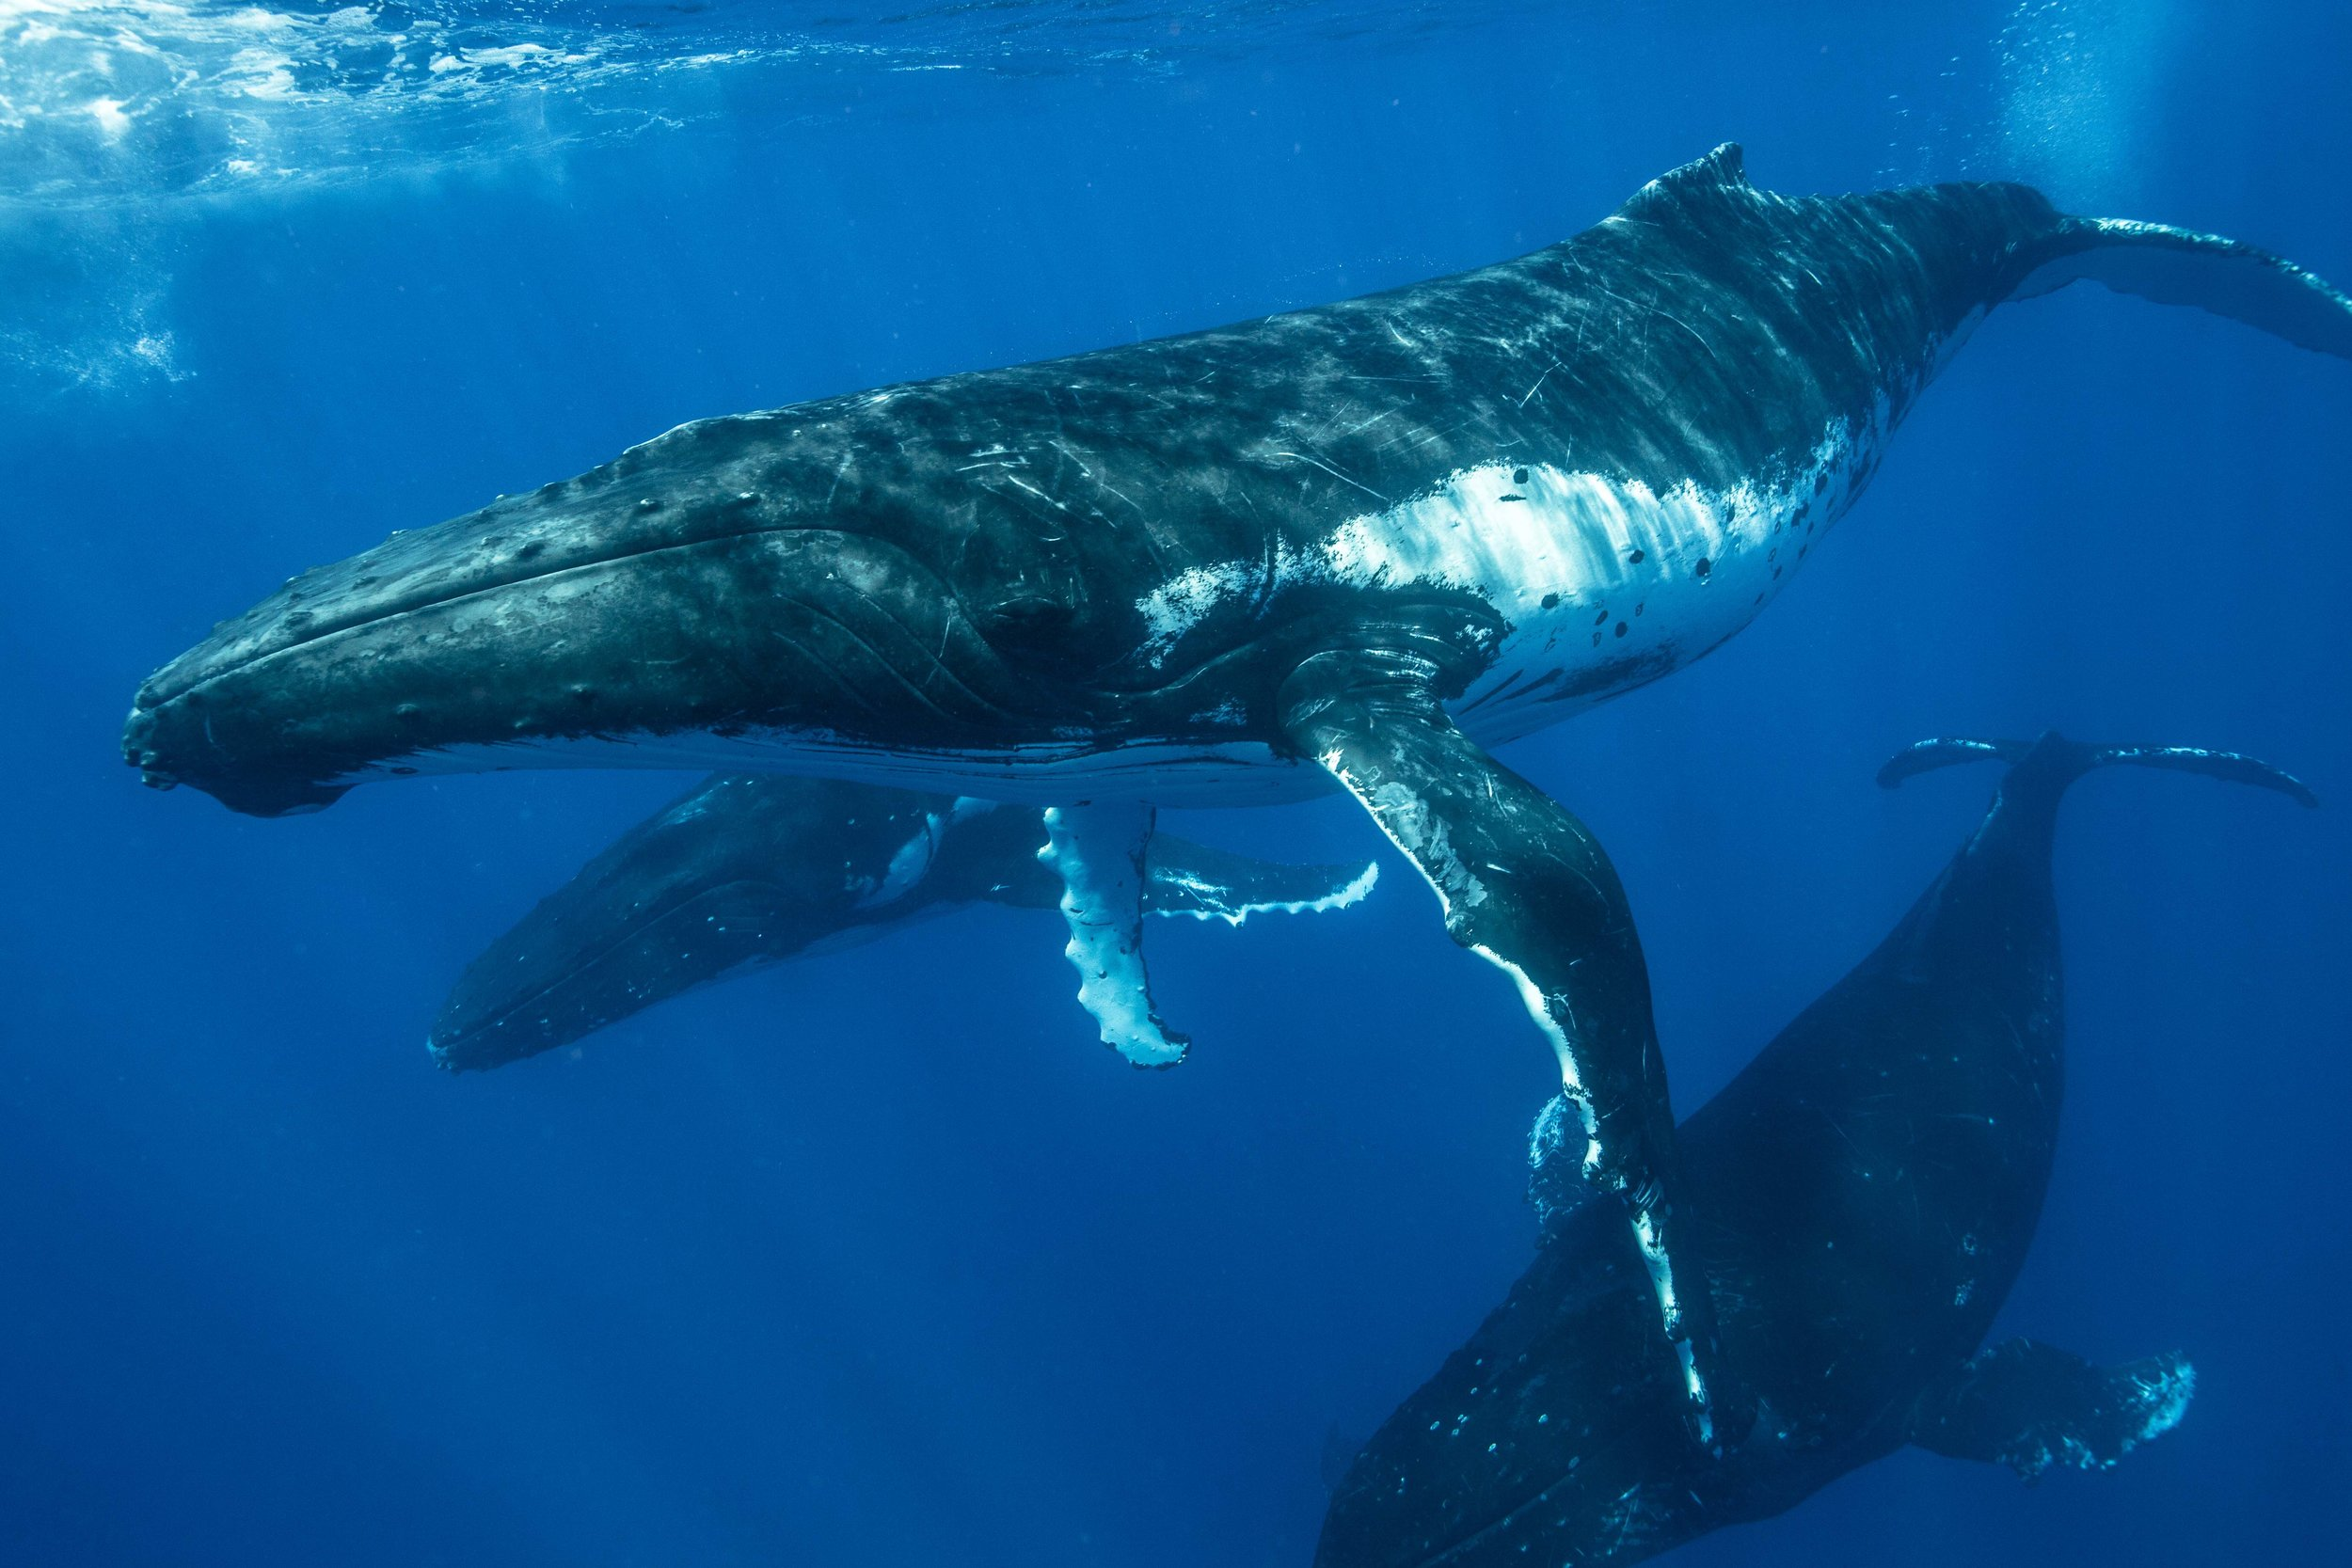 Male whales soar through the clear, deep water off the southern islands of Vava'u in Tonga.